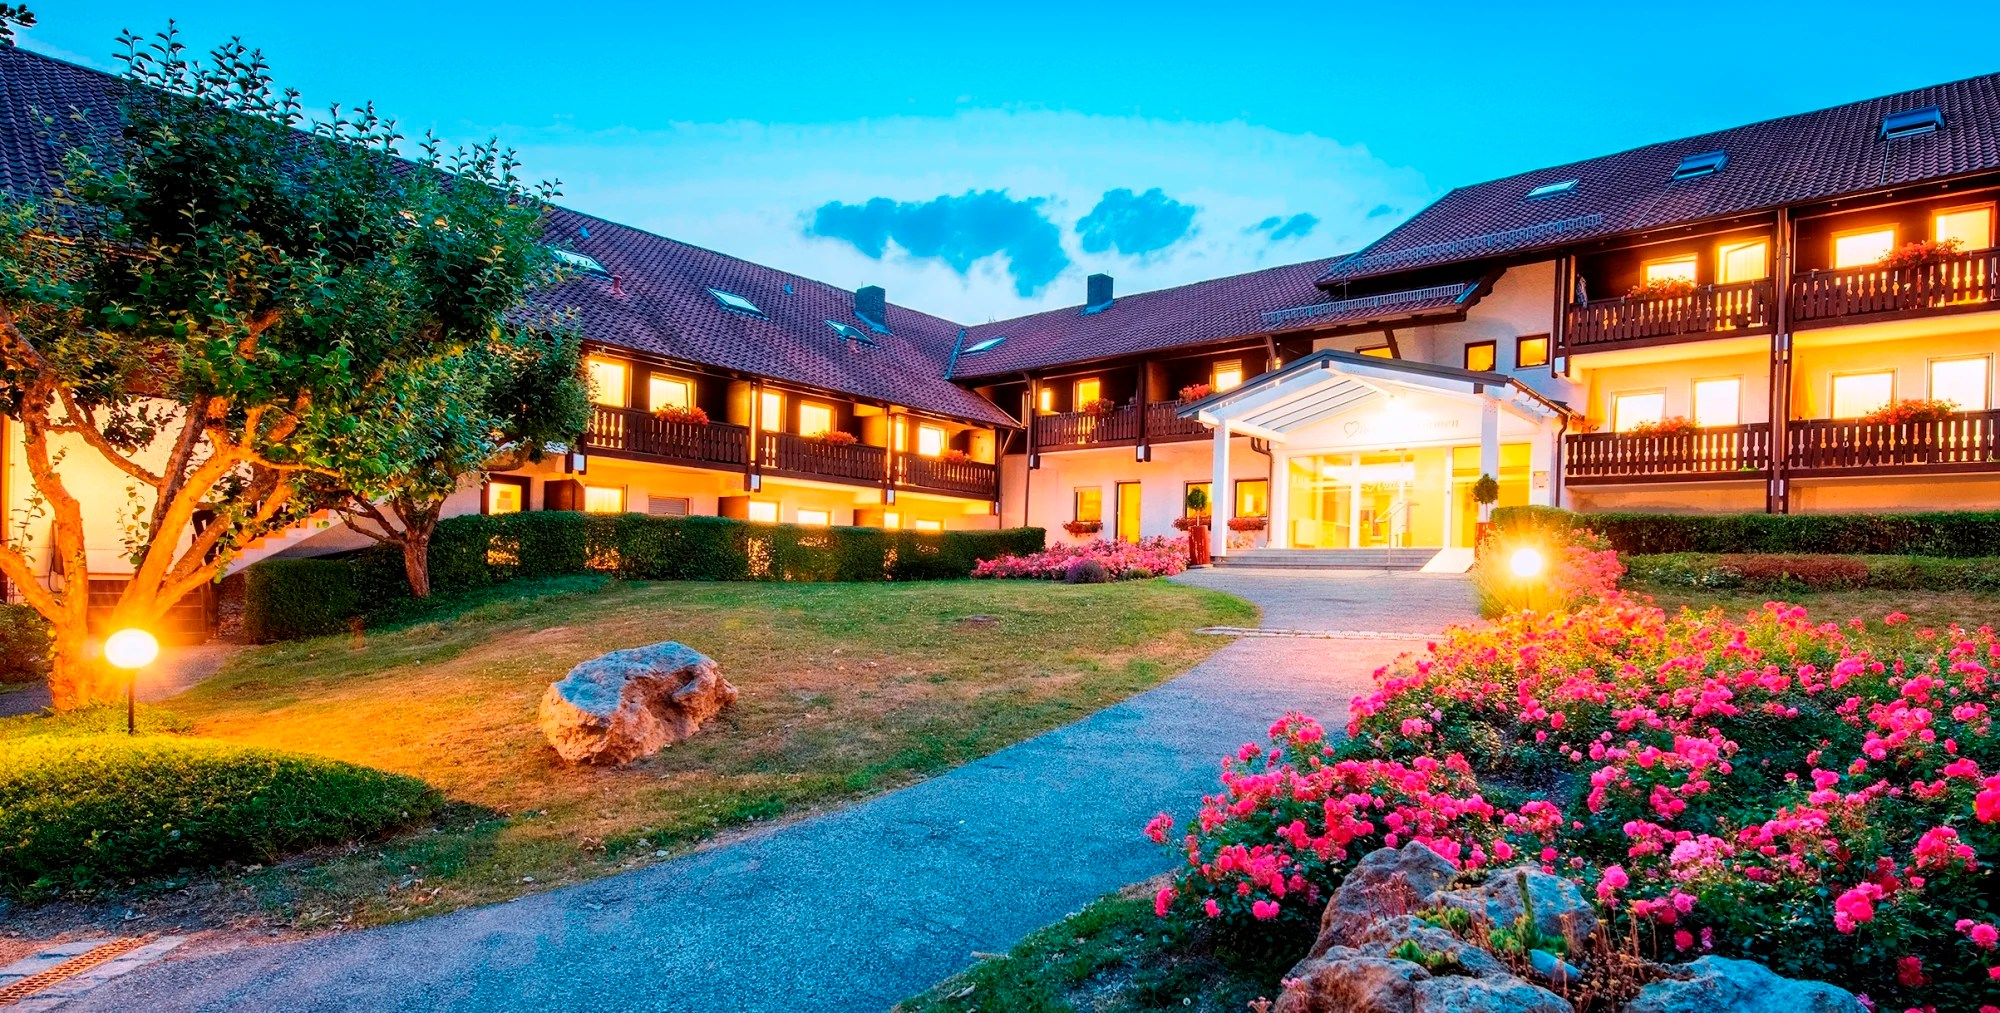 Wellness Bad Birnbach Hotel Hotel Rottaler Hof Bad Birnbach Trivago In